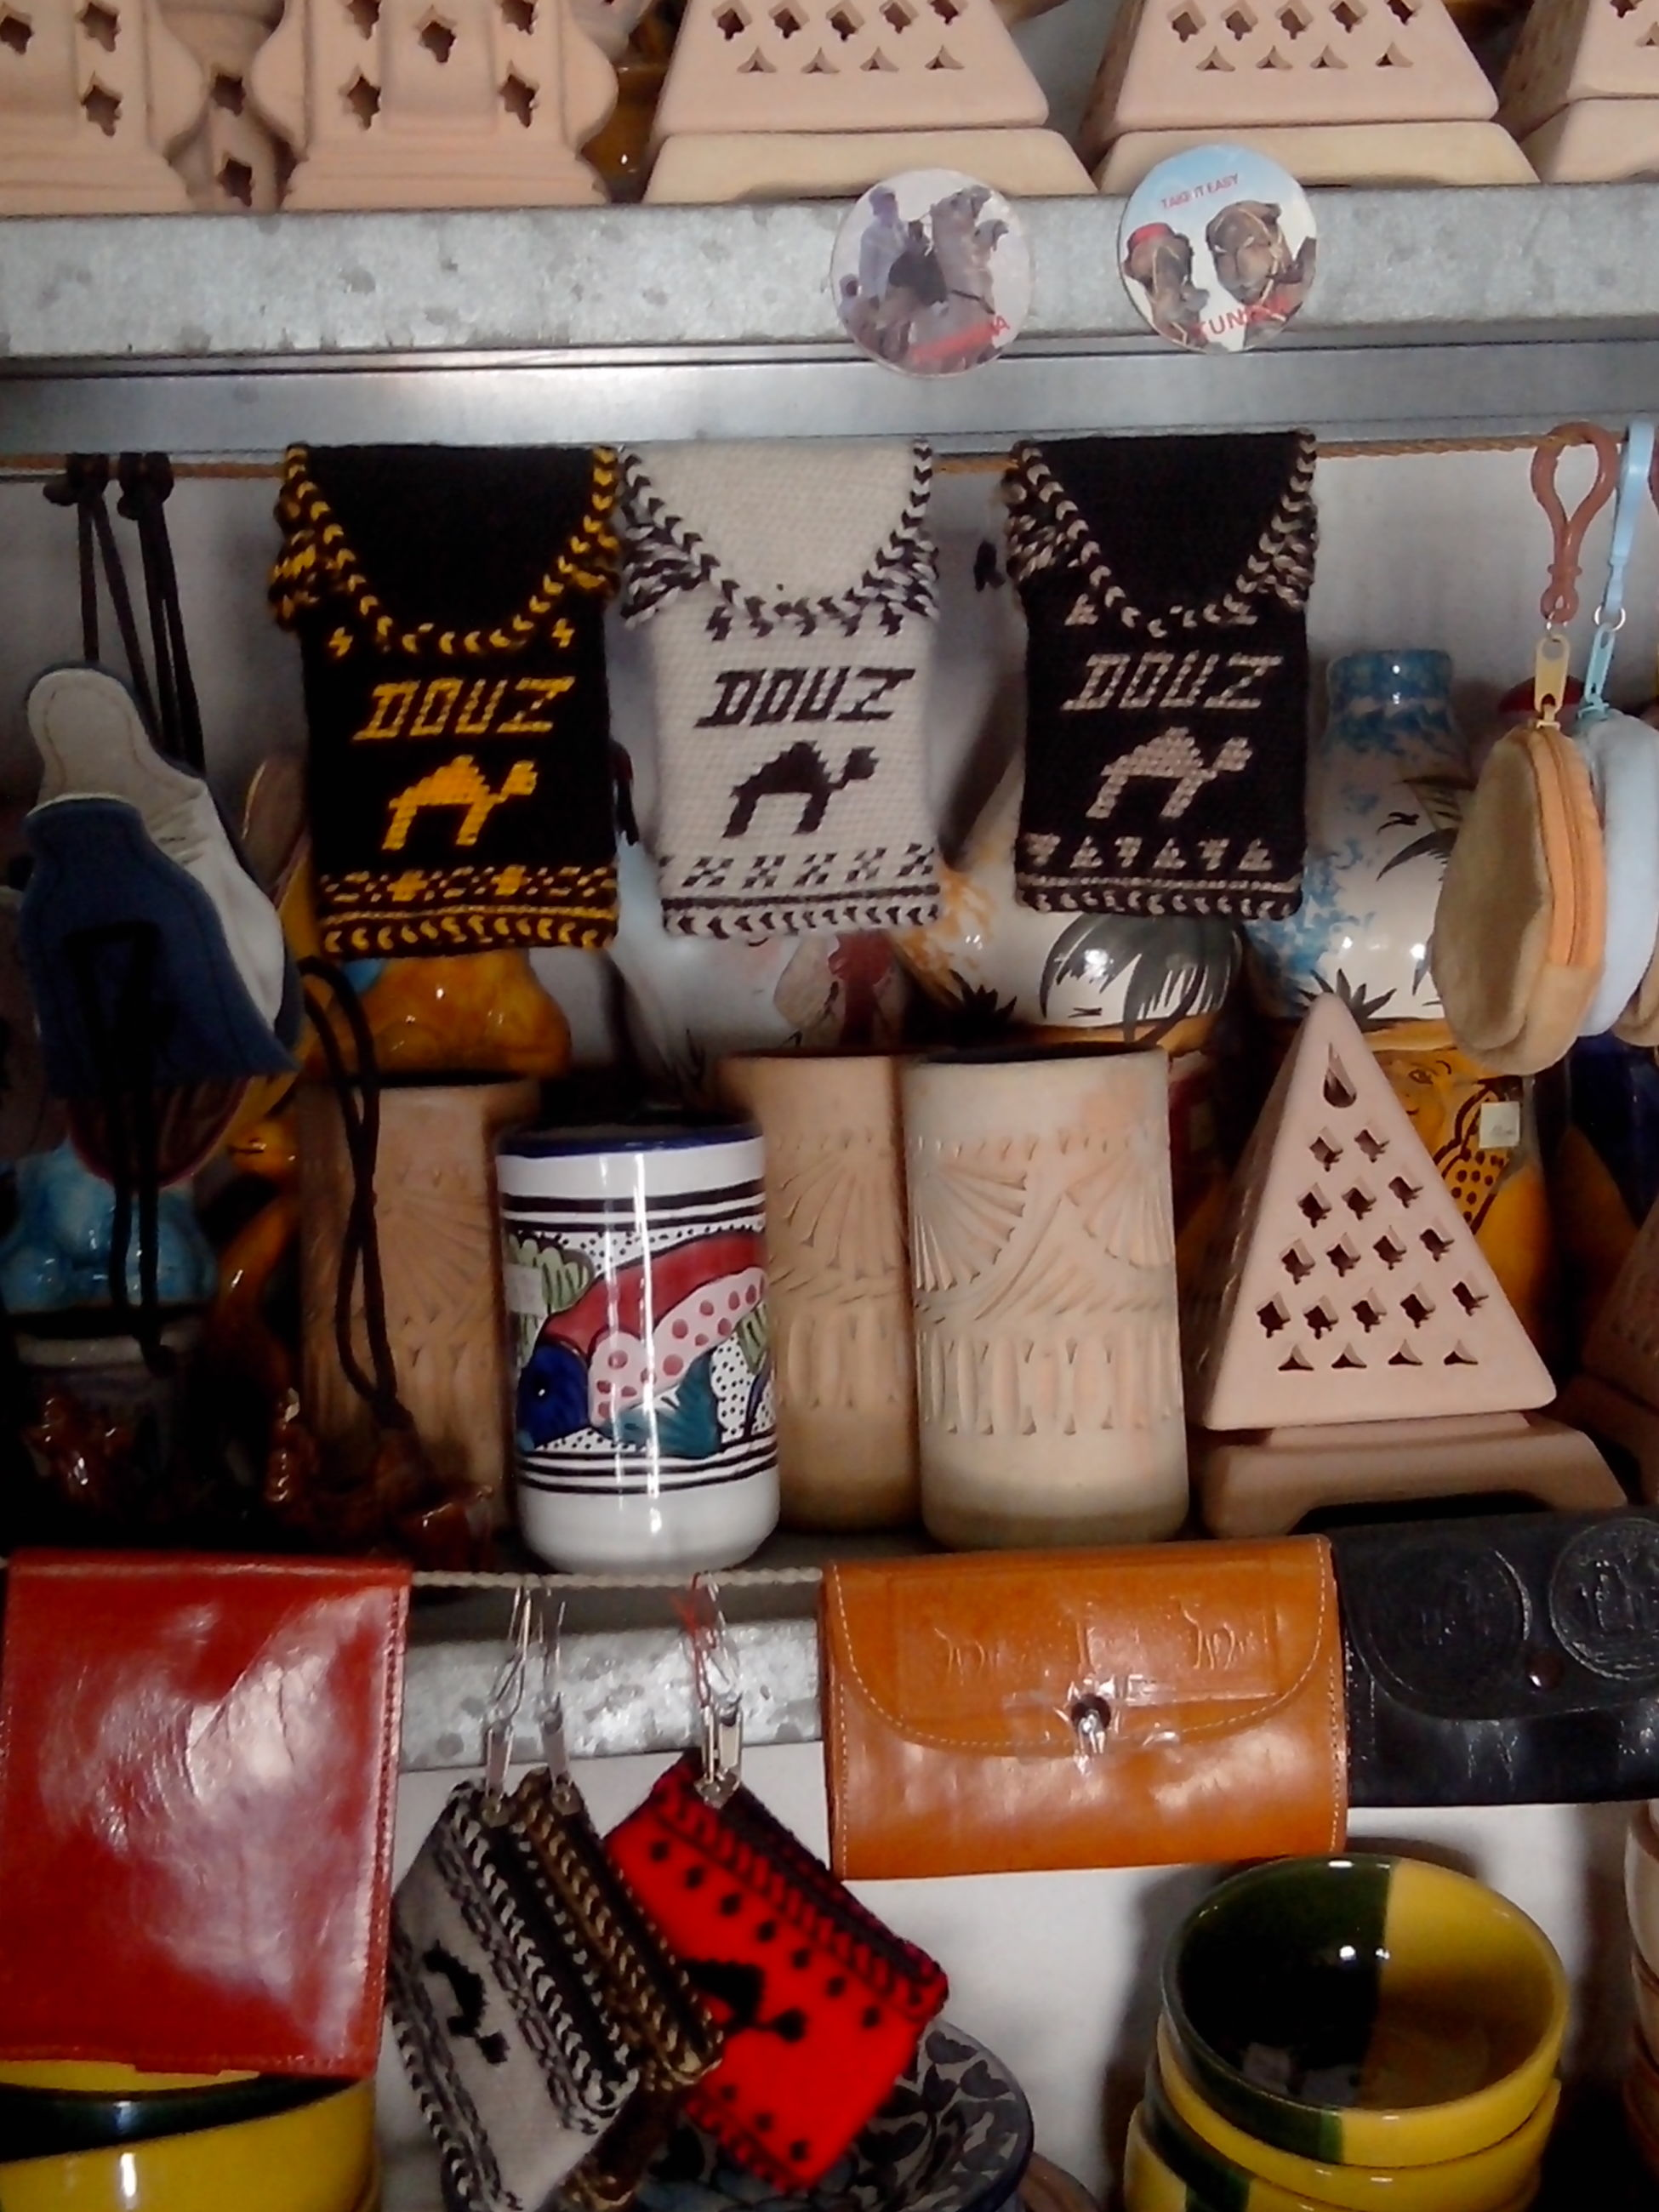 indoors, variation, choice, for sale, still life, retail, large group of objects, arrangement, abundance, table, store, display, shelf, food and drink, in a row, order, collection, book, text, market stall